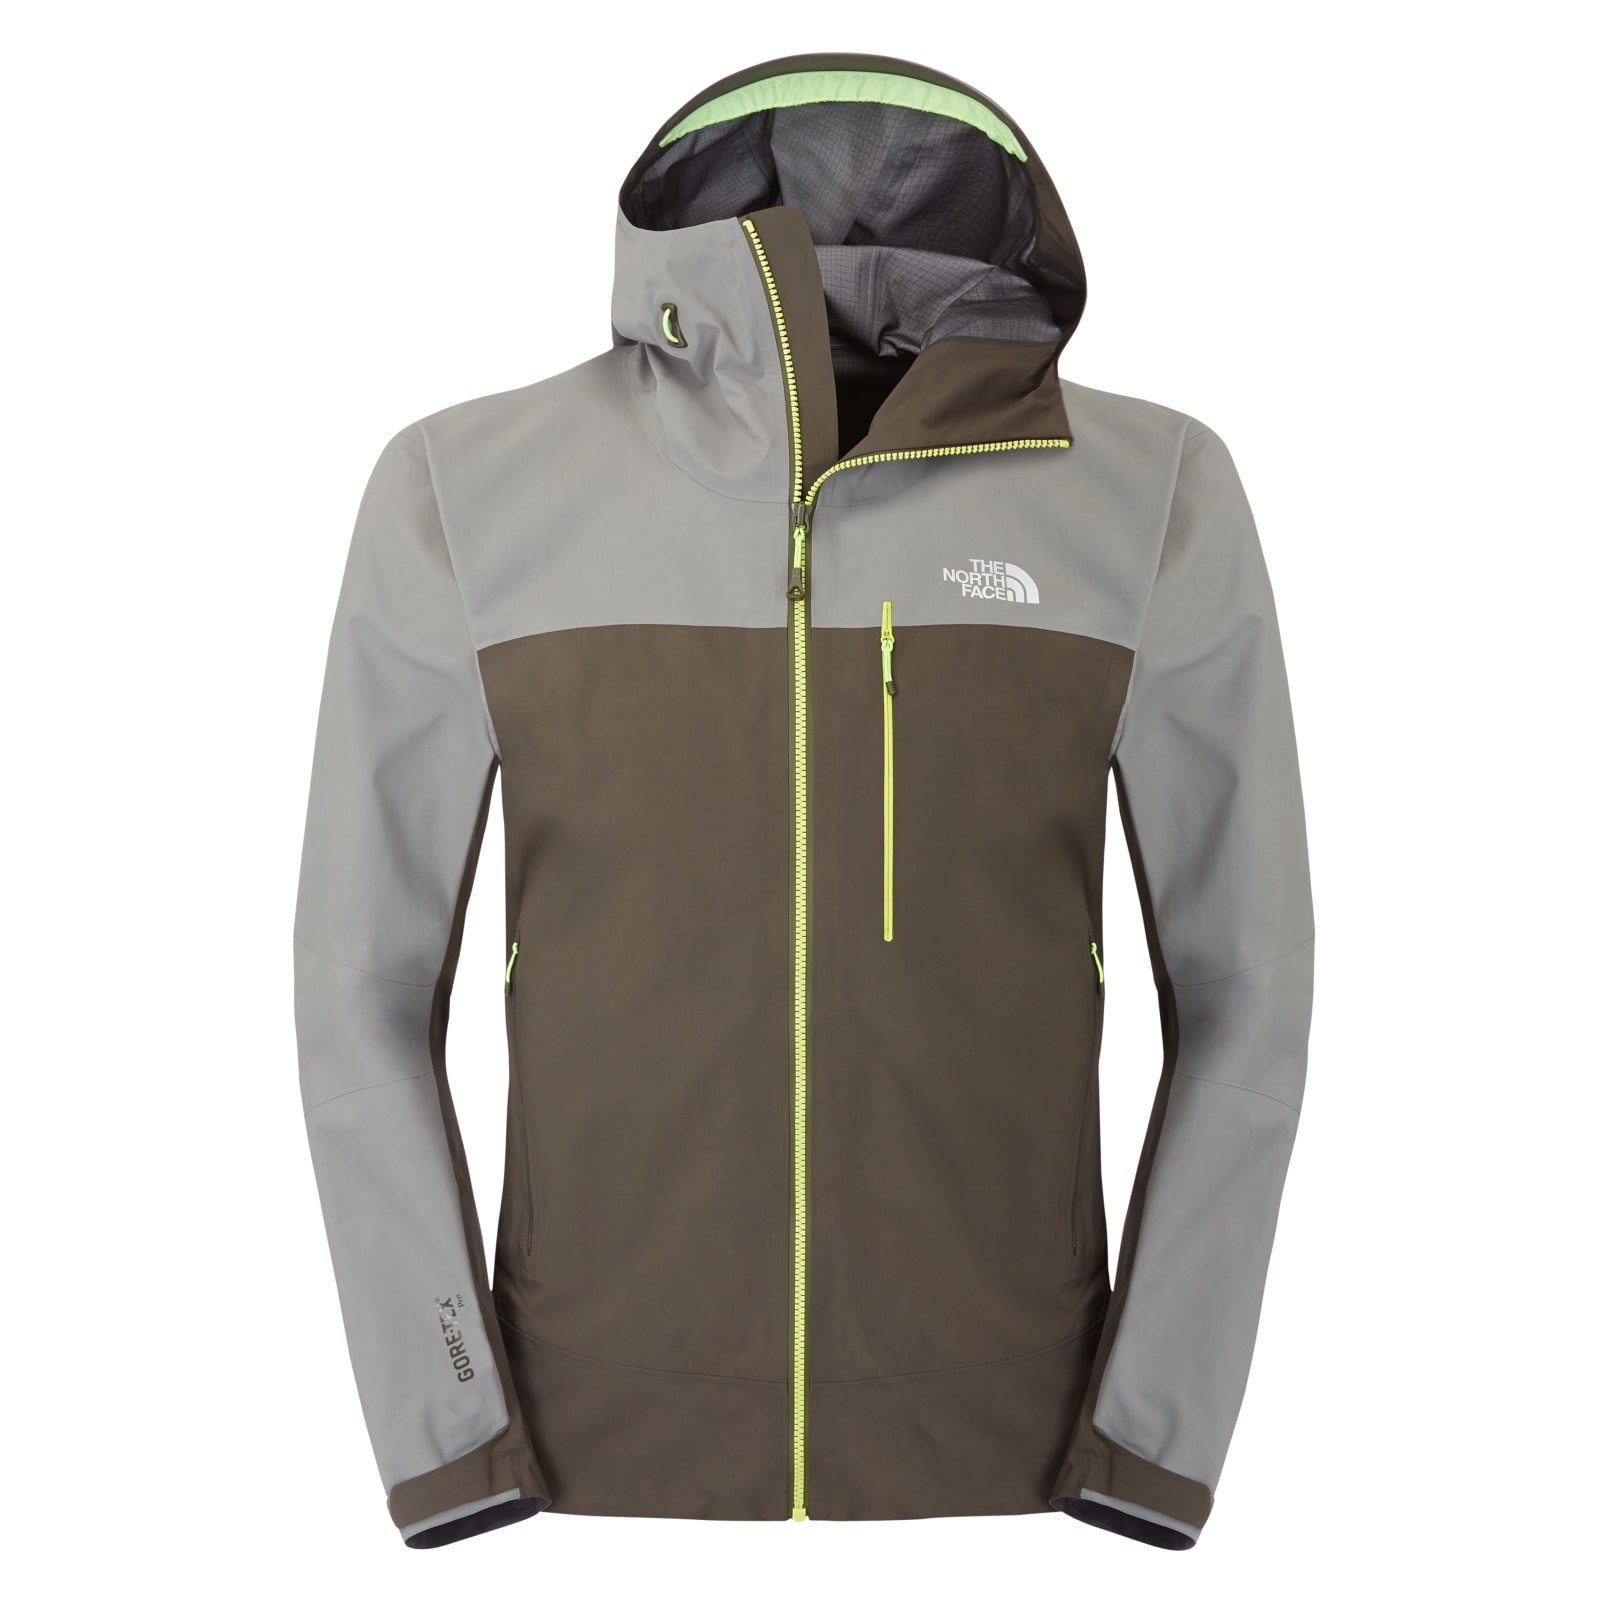 af59abbdc215 Buy The North Face Men s Zero Gully Jacket from Outnorth